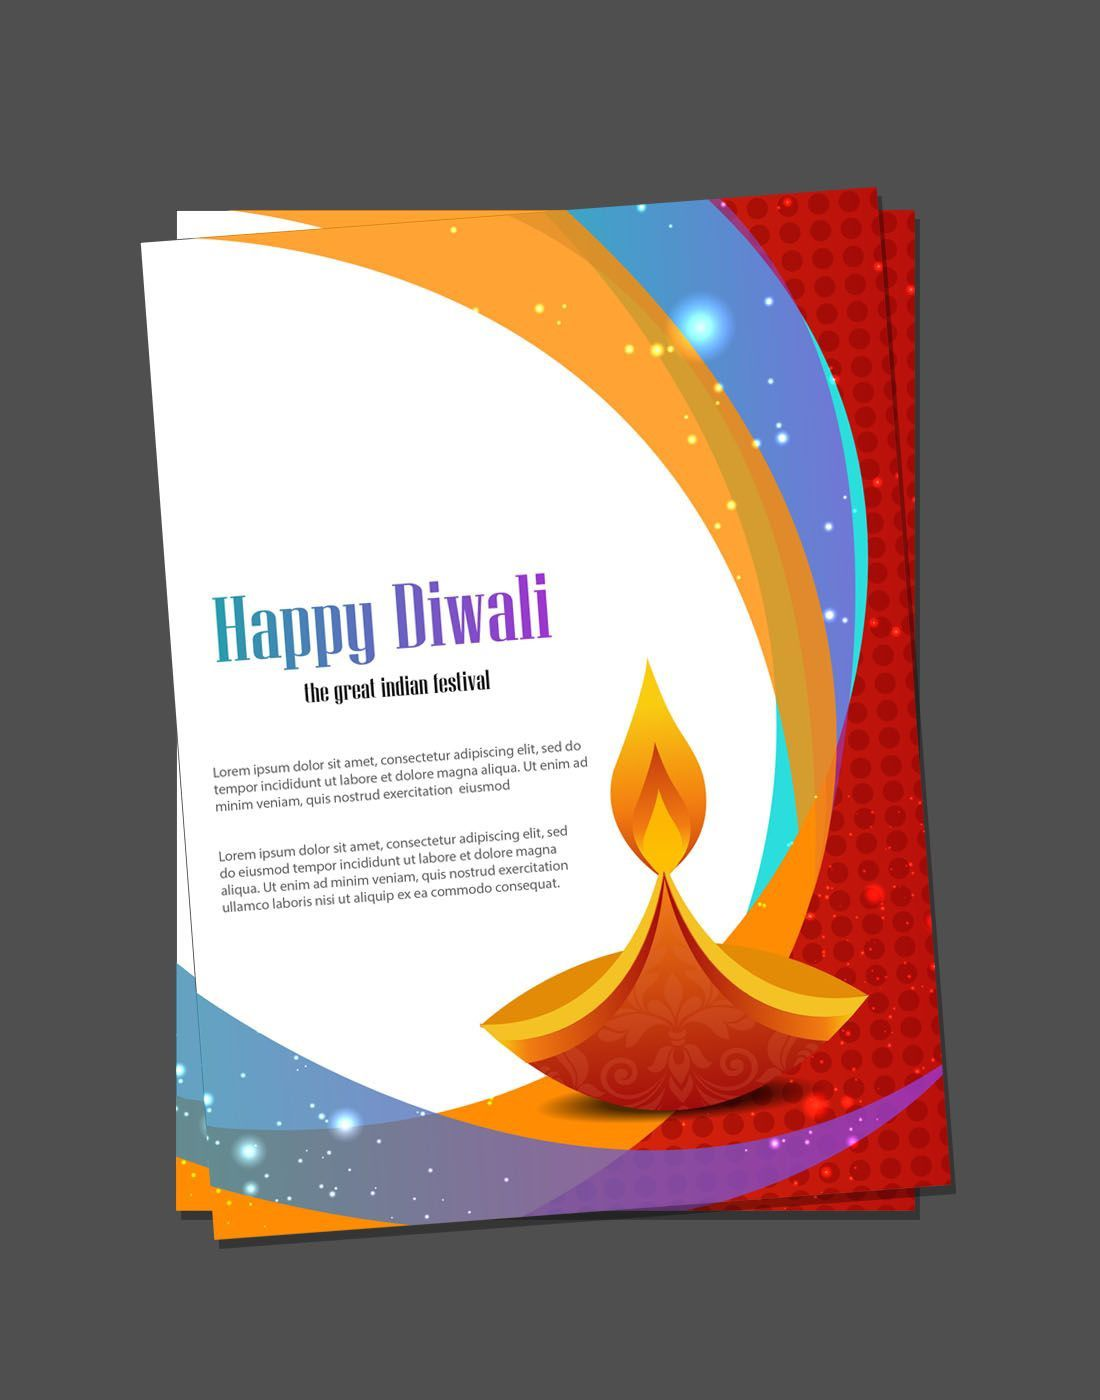 002 Shocking Diwali Party Invite Template Free High Def Full